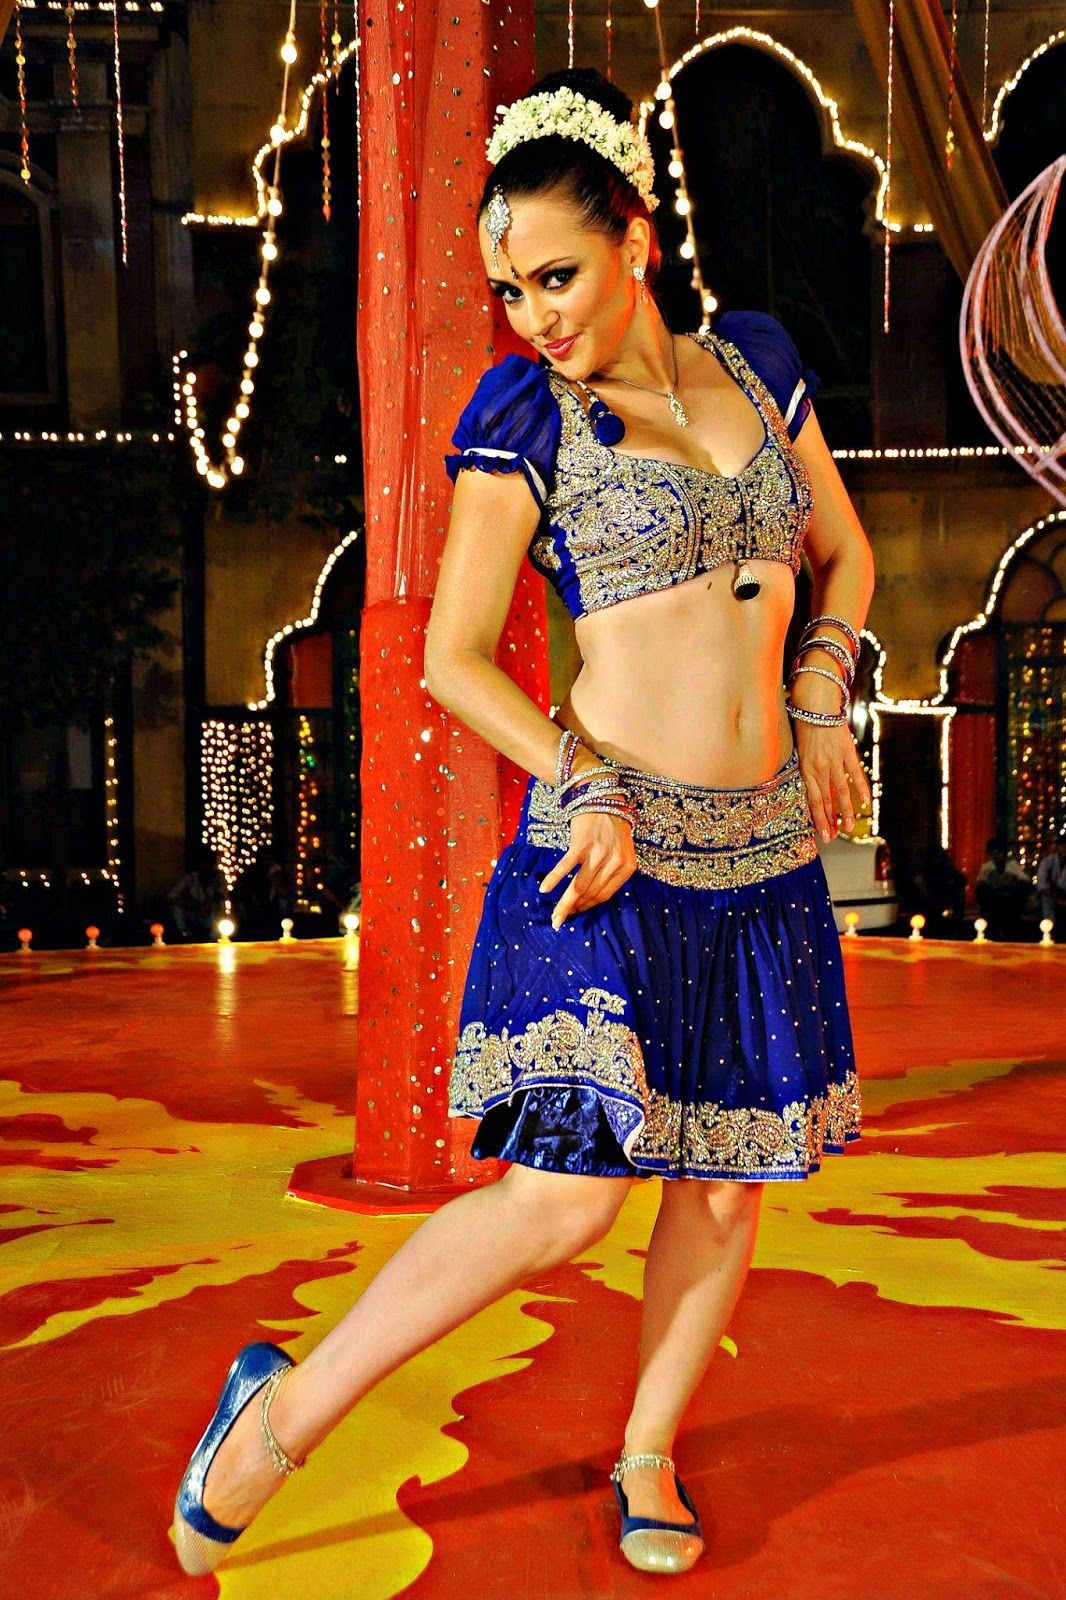 Indian actress photo hd high resolution hd movie wallpaper item indian actress photo hd high resolution hd movie wallpaper item dance actress in blue short blose and short skirt hdr hot photo stills thecheapjerseys Image collections